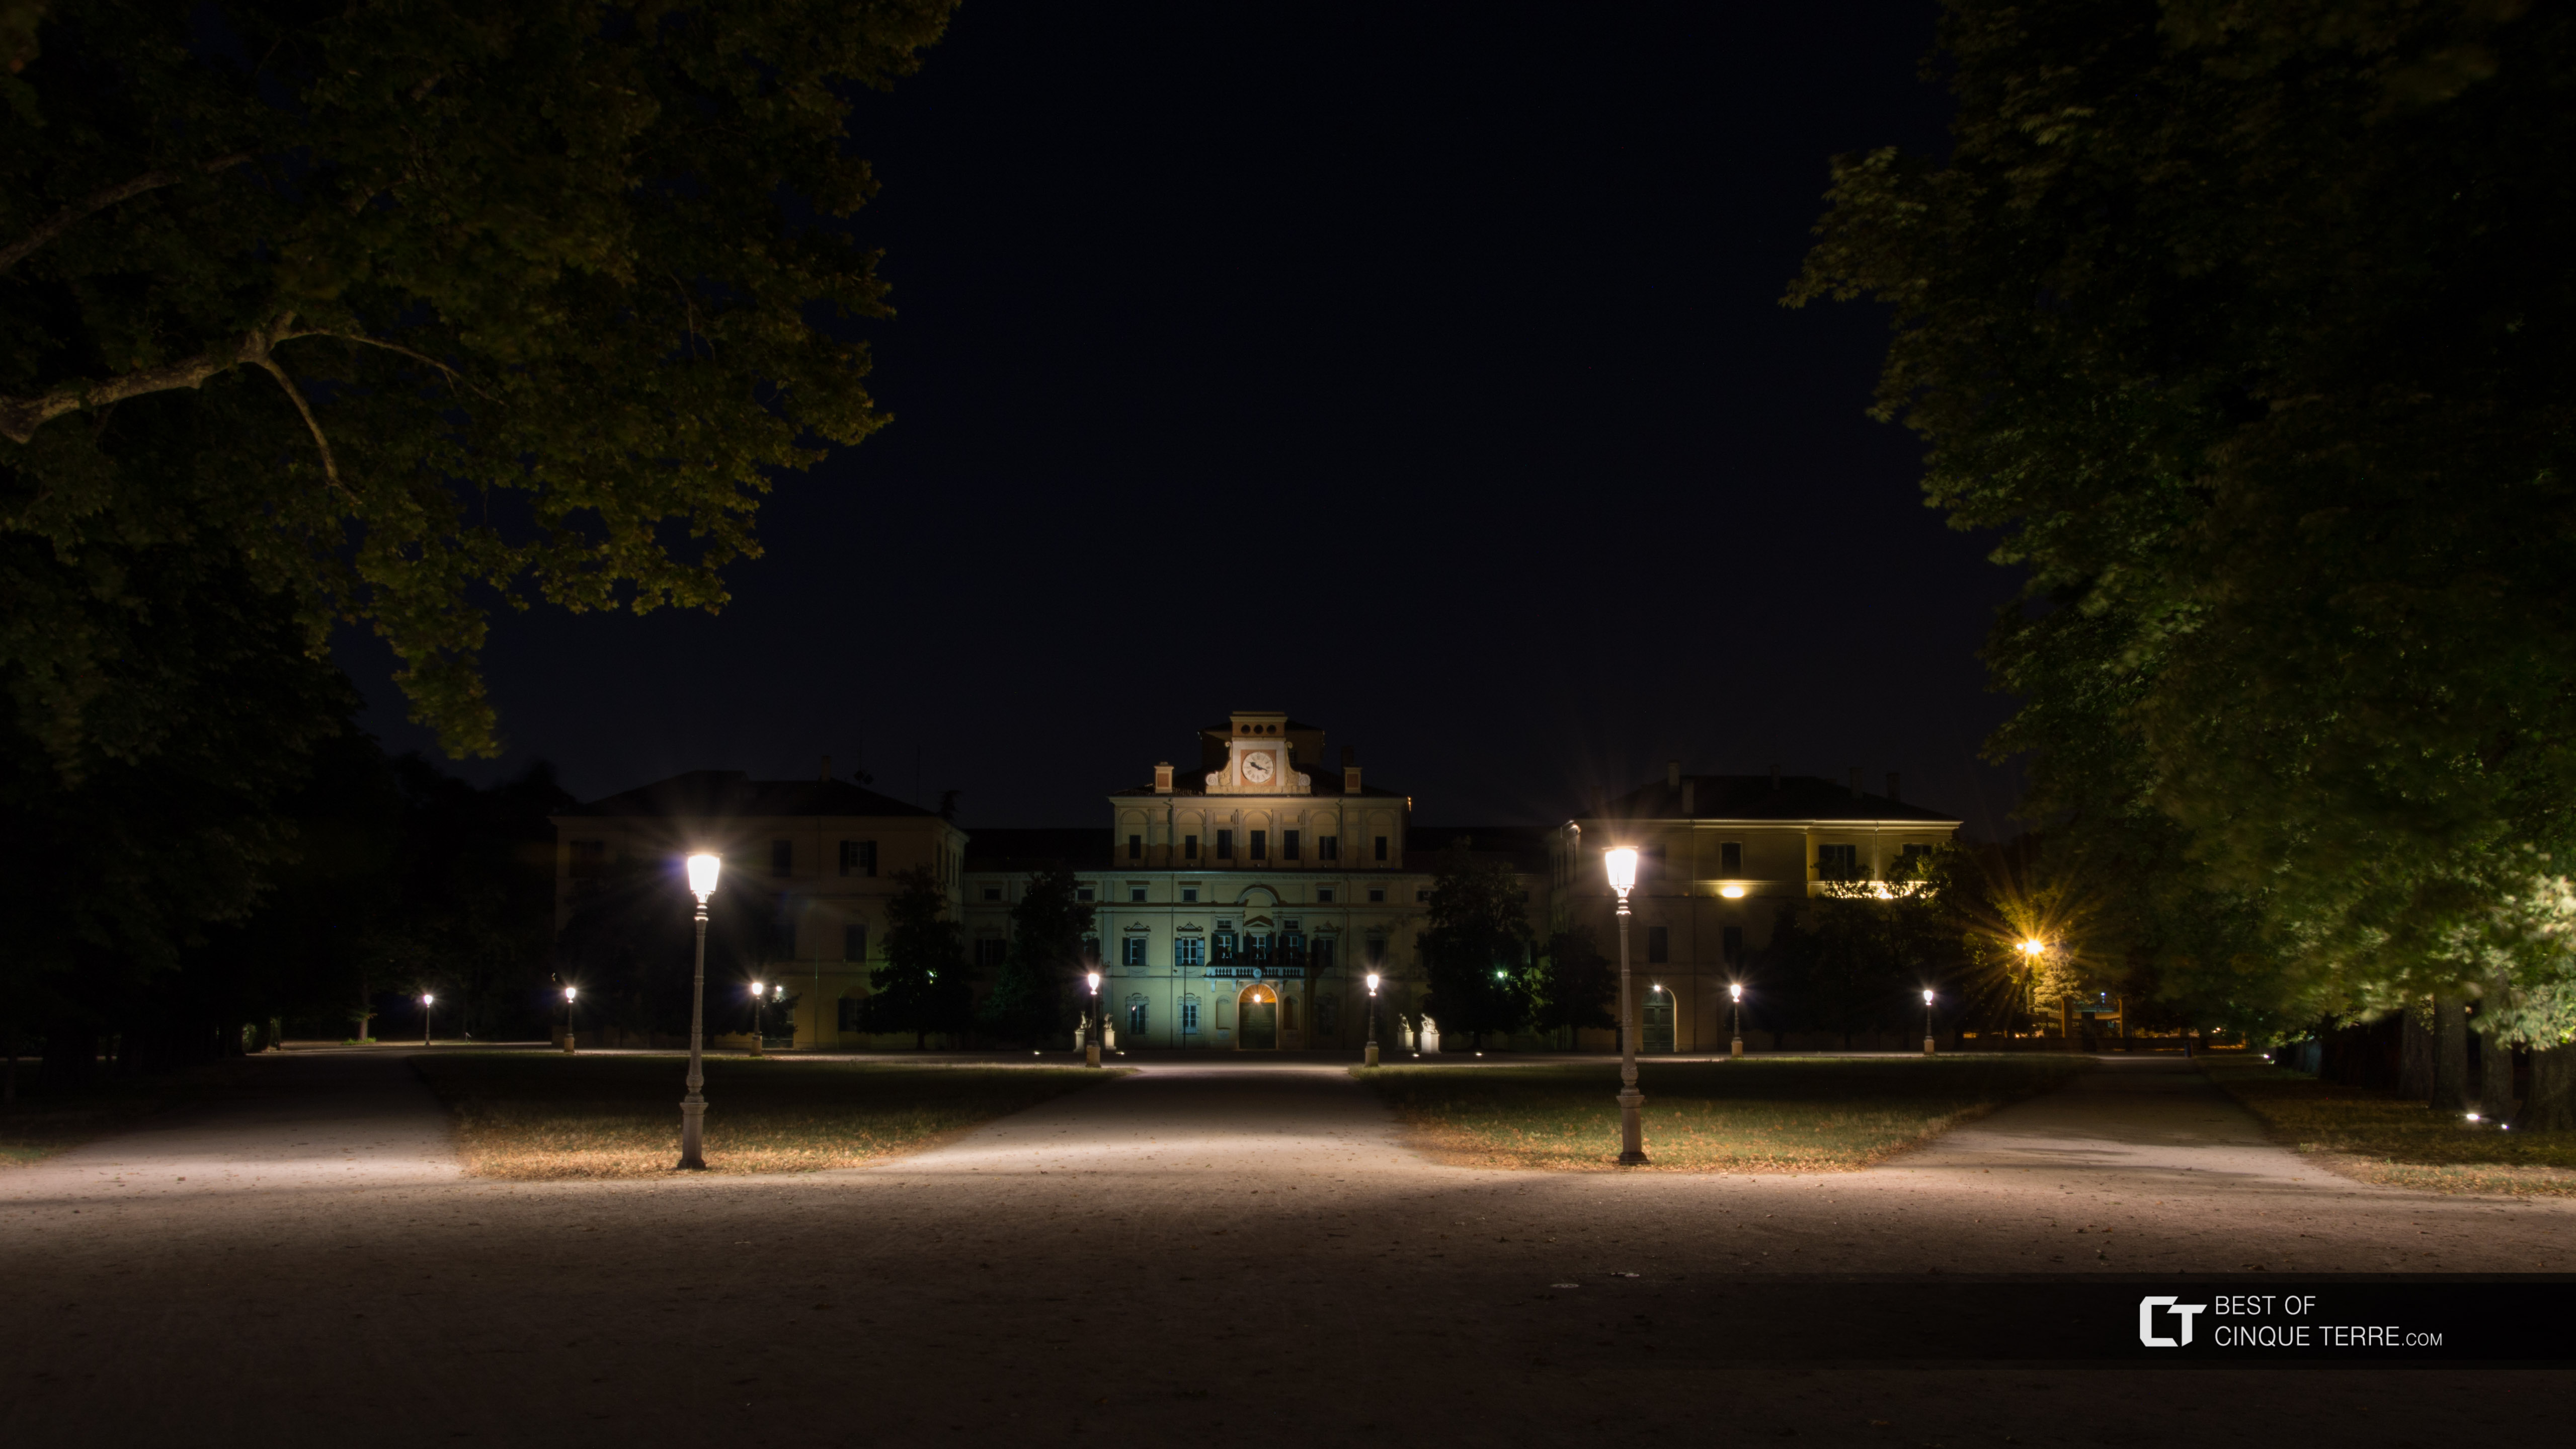 Ducal Palace in the Ducal Park by night, Parma, Italy